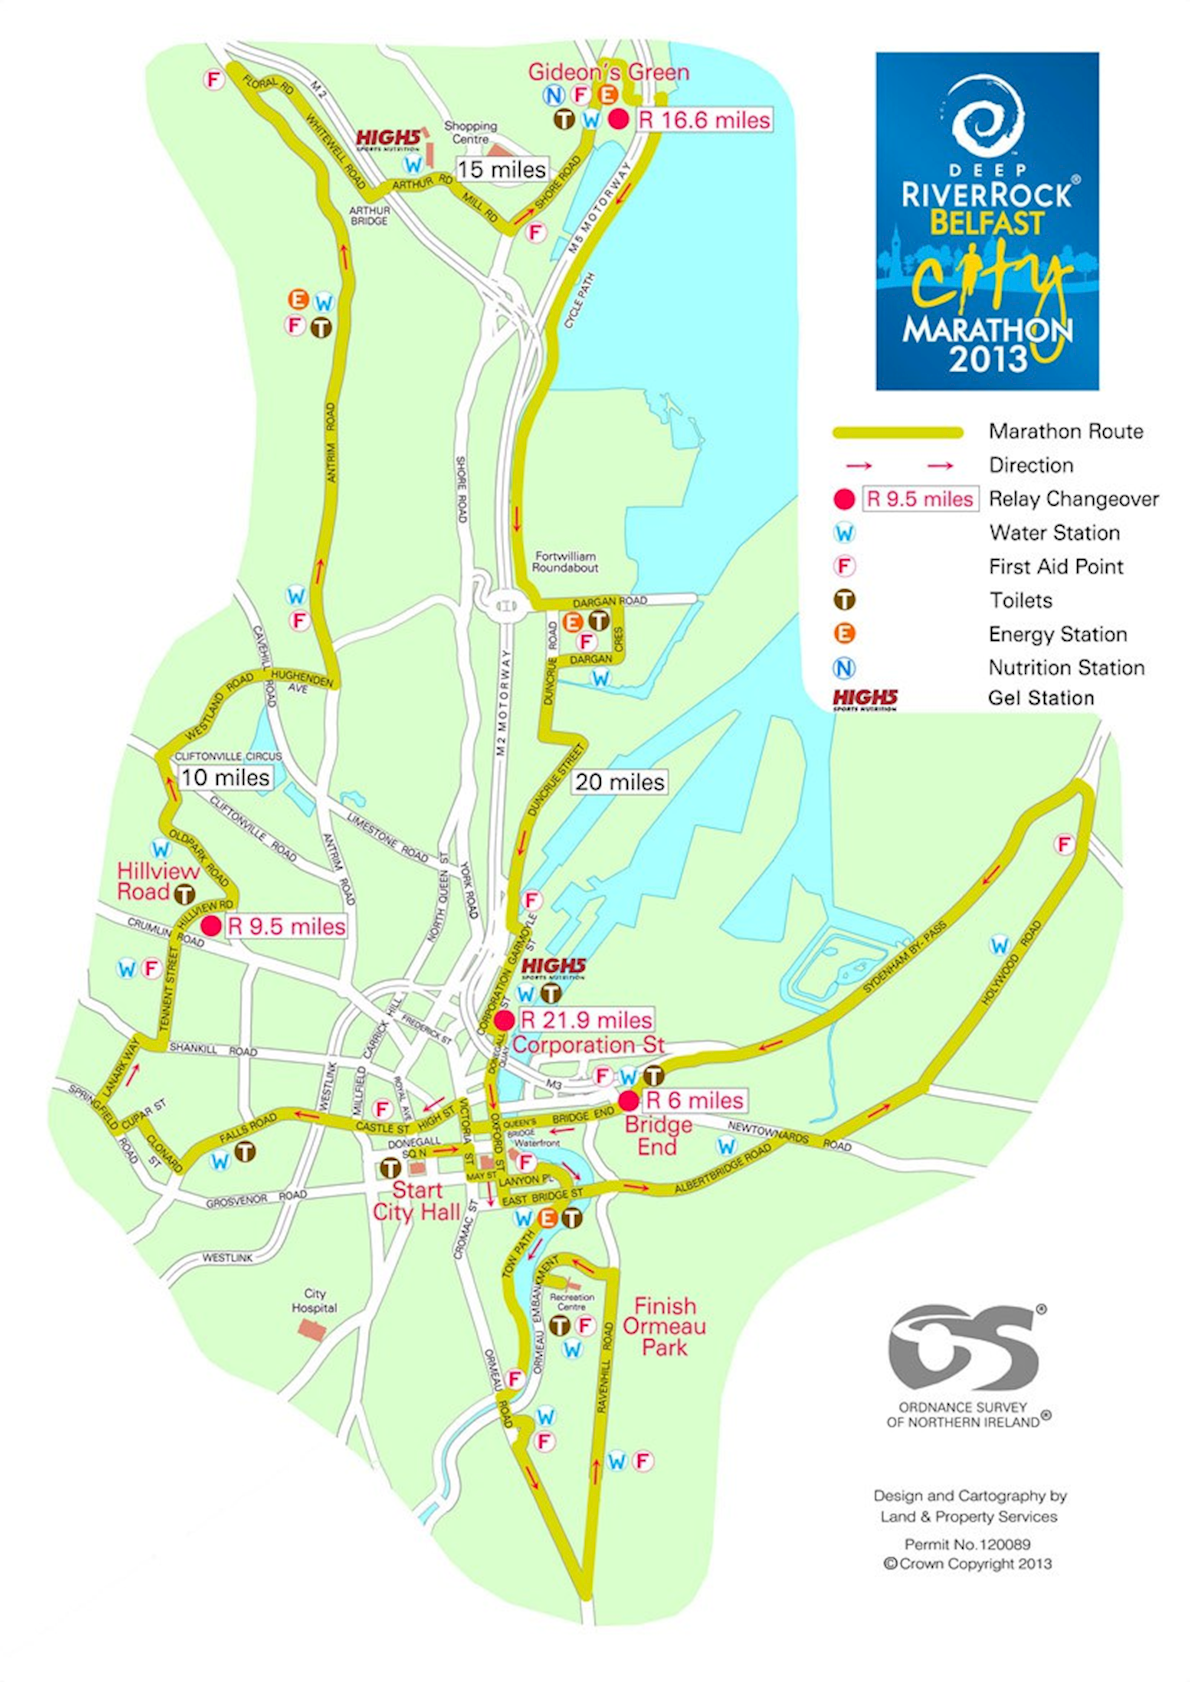 Deep RiverRock Belfast City Marathon 路线图